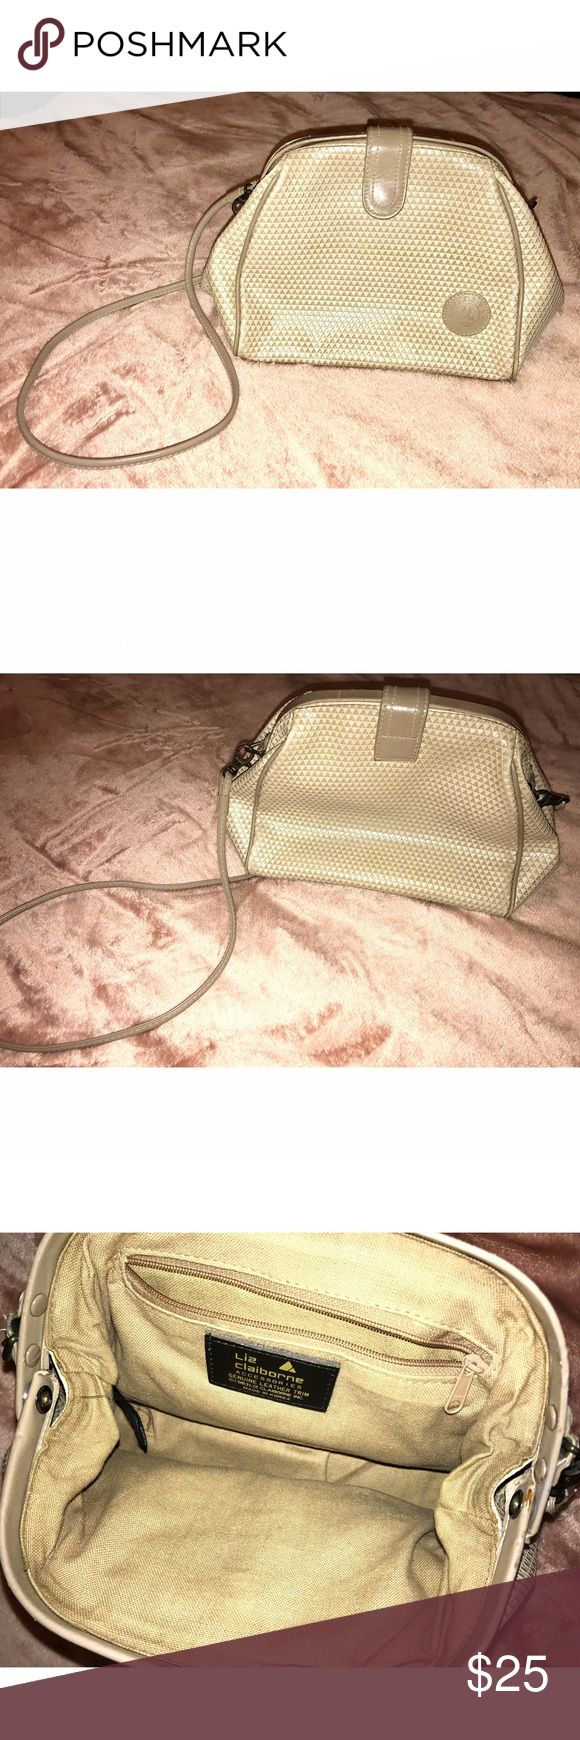 Vintage Liz Claiborne Purse!✨ Vintage Cream cross body/shoulder bag! In VERY good condition, a couple marks by the strap closures (as shown). Love the space inside, & the frame that gives the bag it's cute shape!   ✨BUNDLE & SAVE✨  **💕REASONABLE OFFERS ALWAYS WELCOME!💕**   ✨comes from a smoke-free environment✨  ***TAGS: American Apparel, Topshop, Gap, Ralph Lauren, Forever 21, F21, H&M, Zara, Levi's. Liz Claiborne Bags